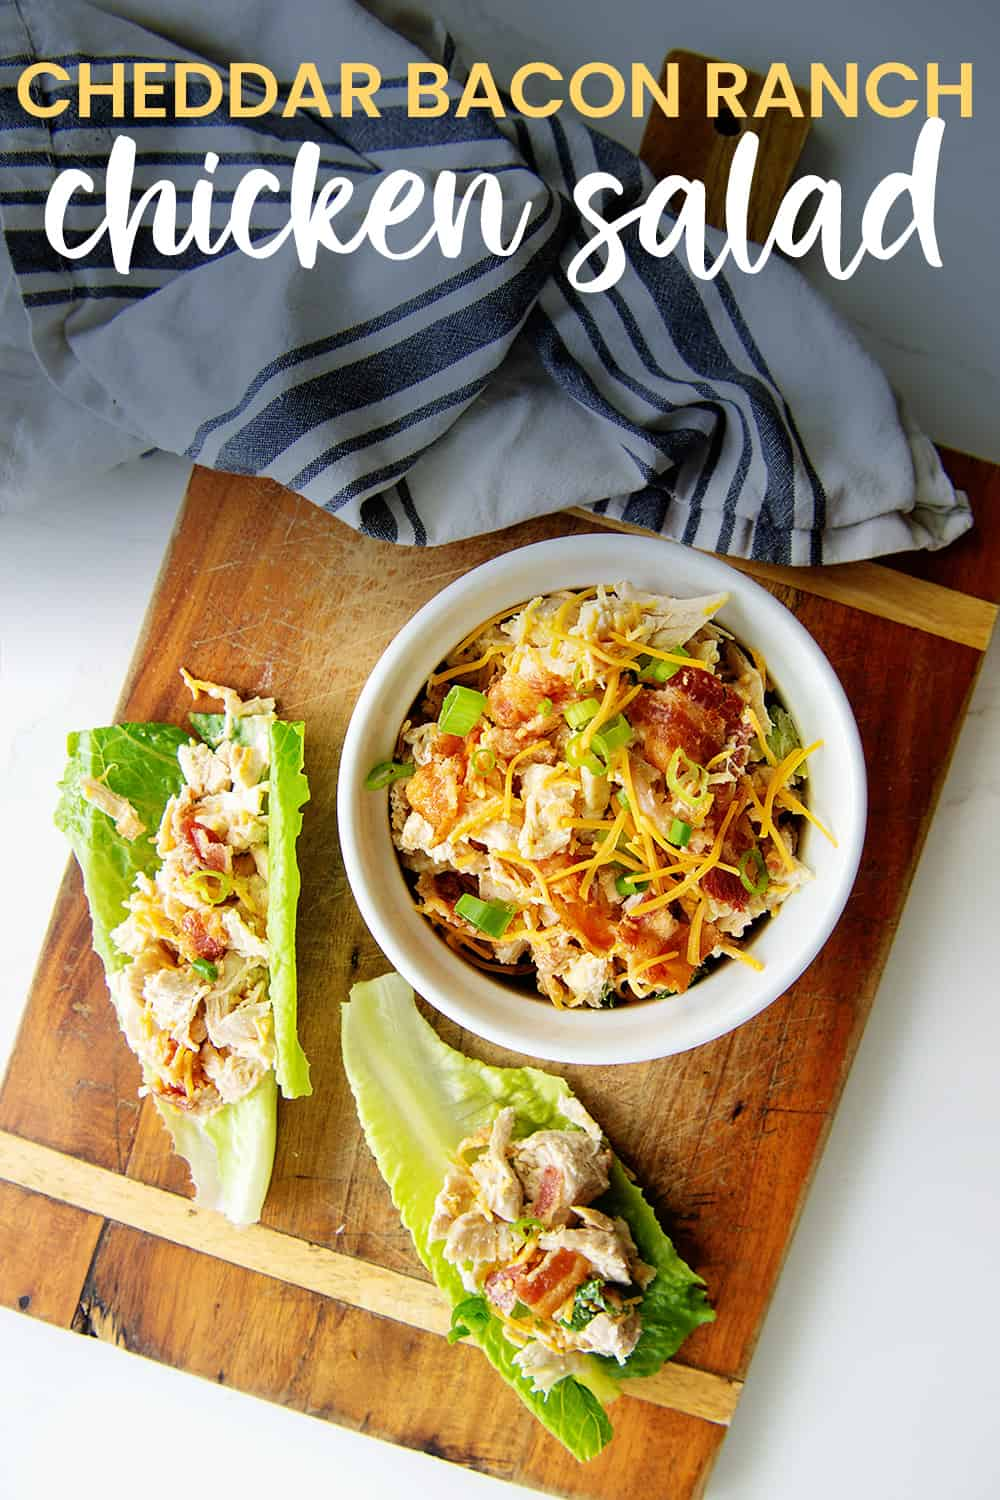 overhead view of chicken salad on cutting board with text for pinterest.